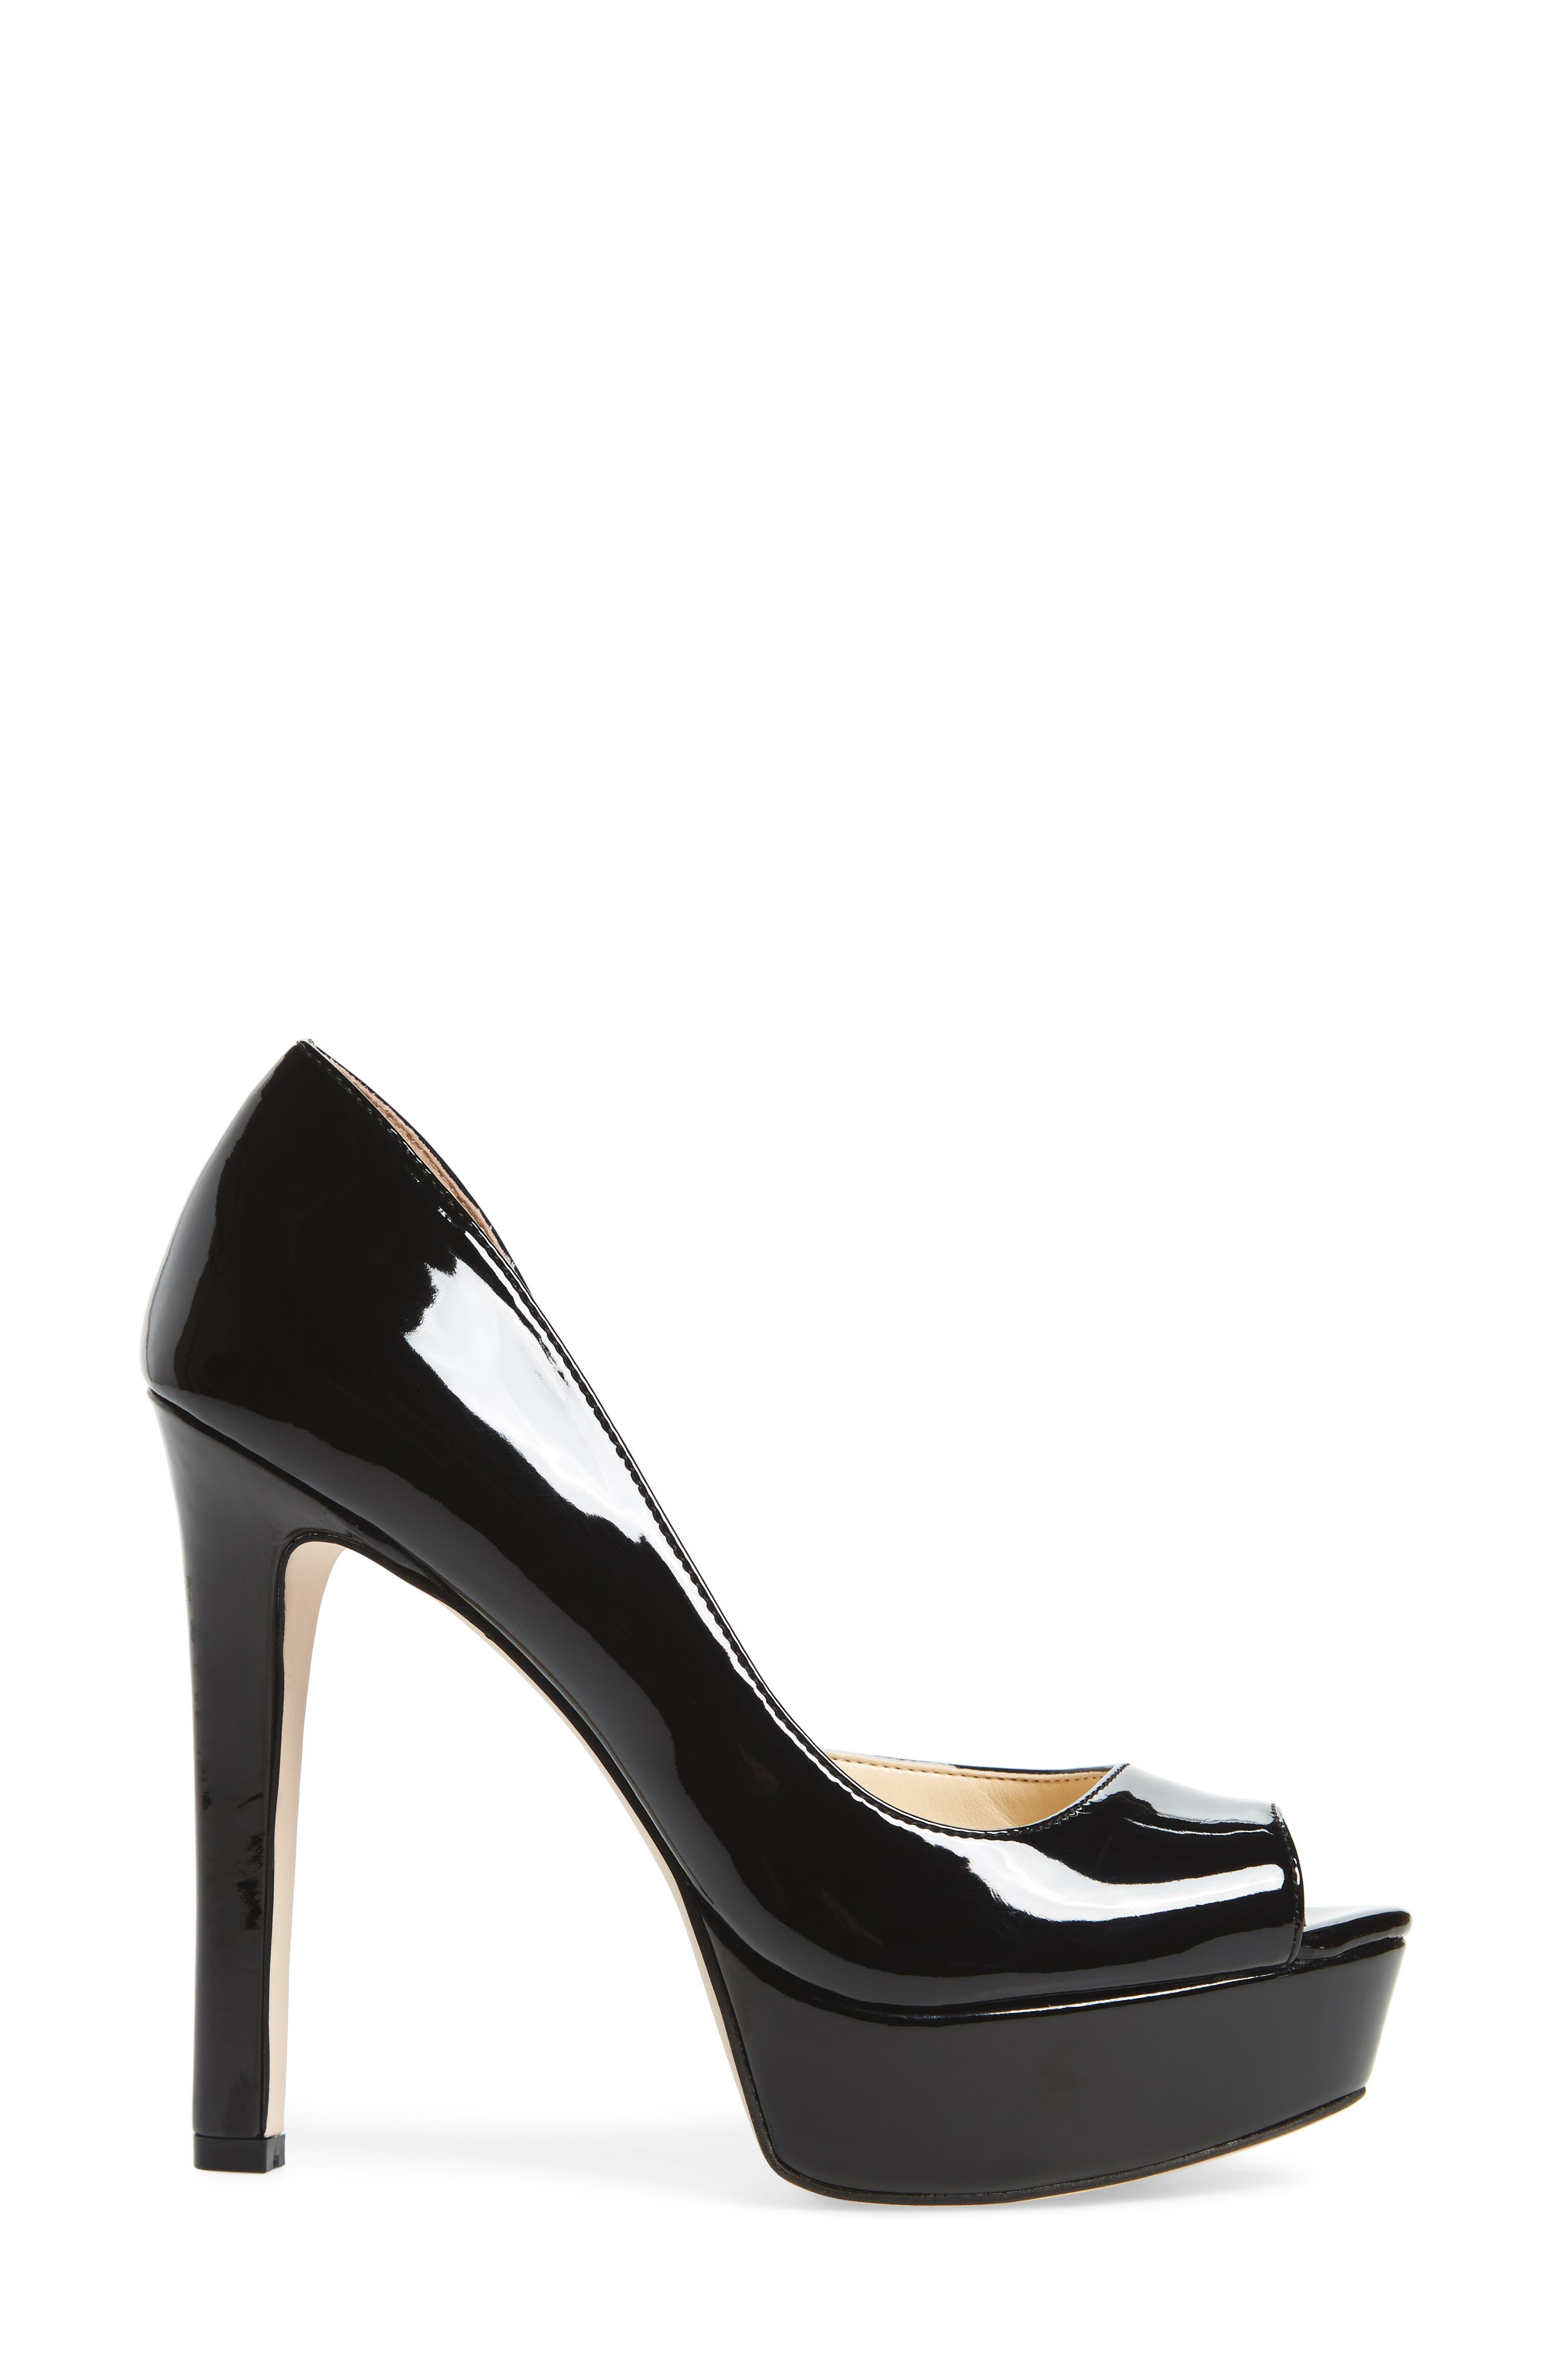 Martella Platform Pump,                             Alternate thumbnail 3, color,                             001